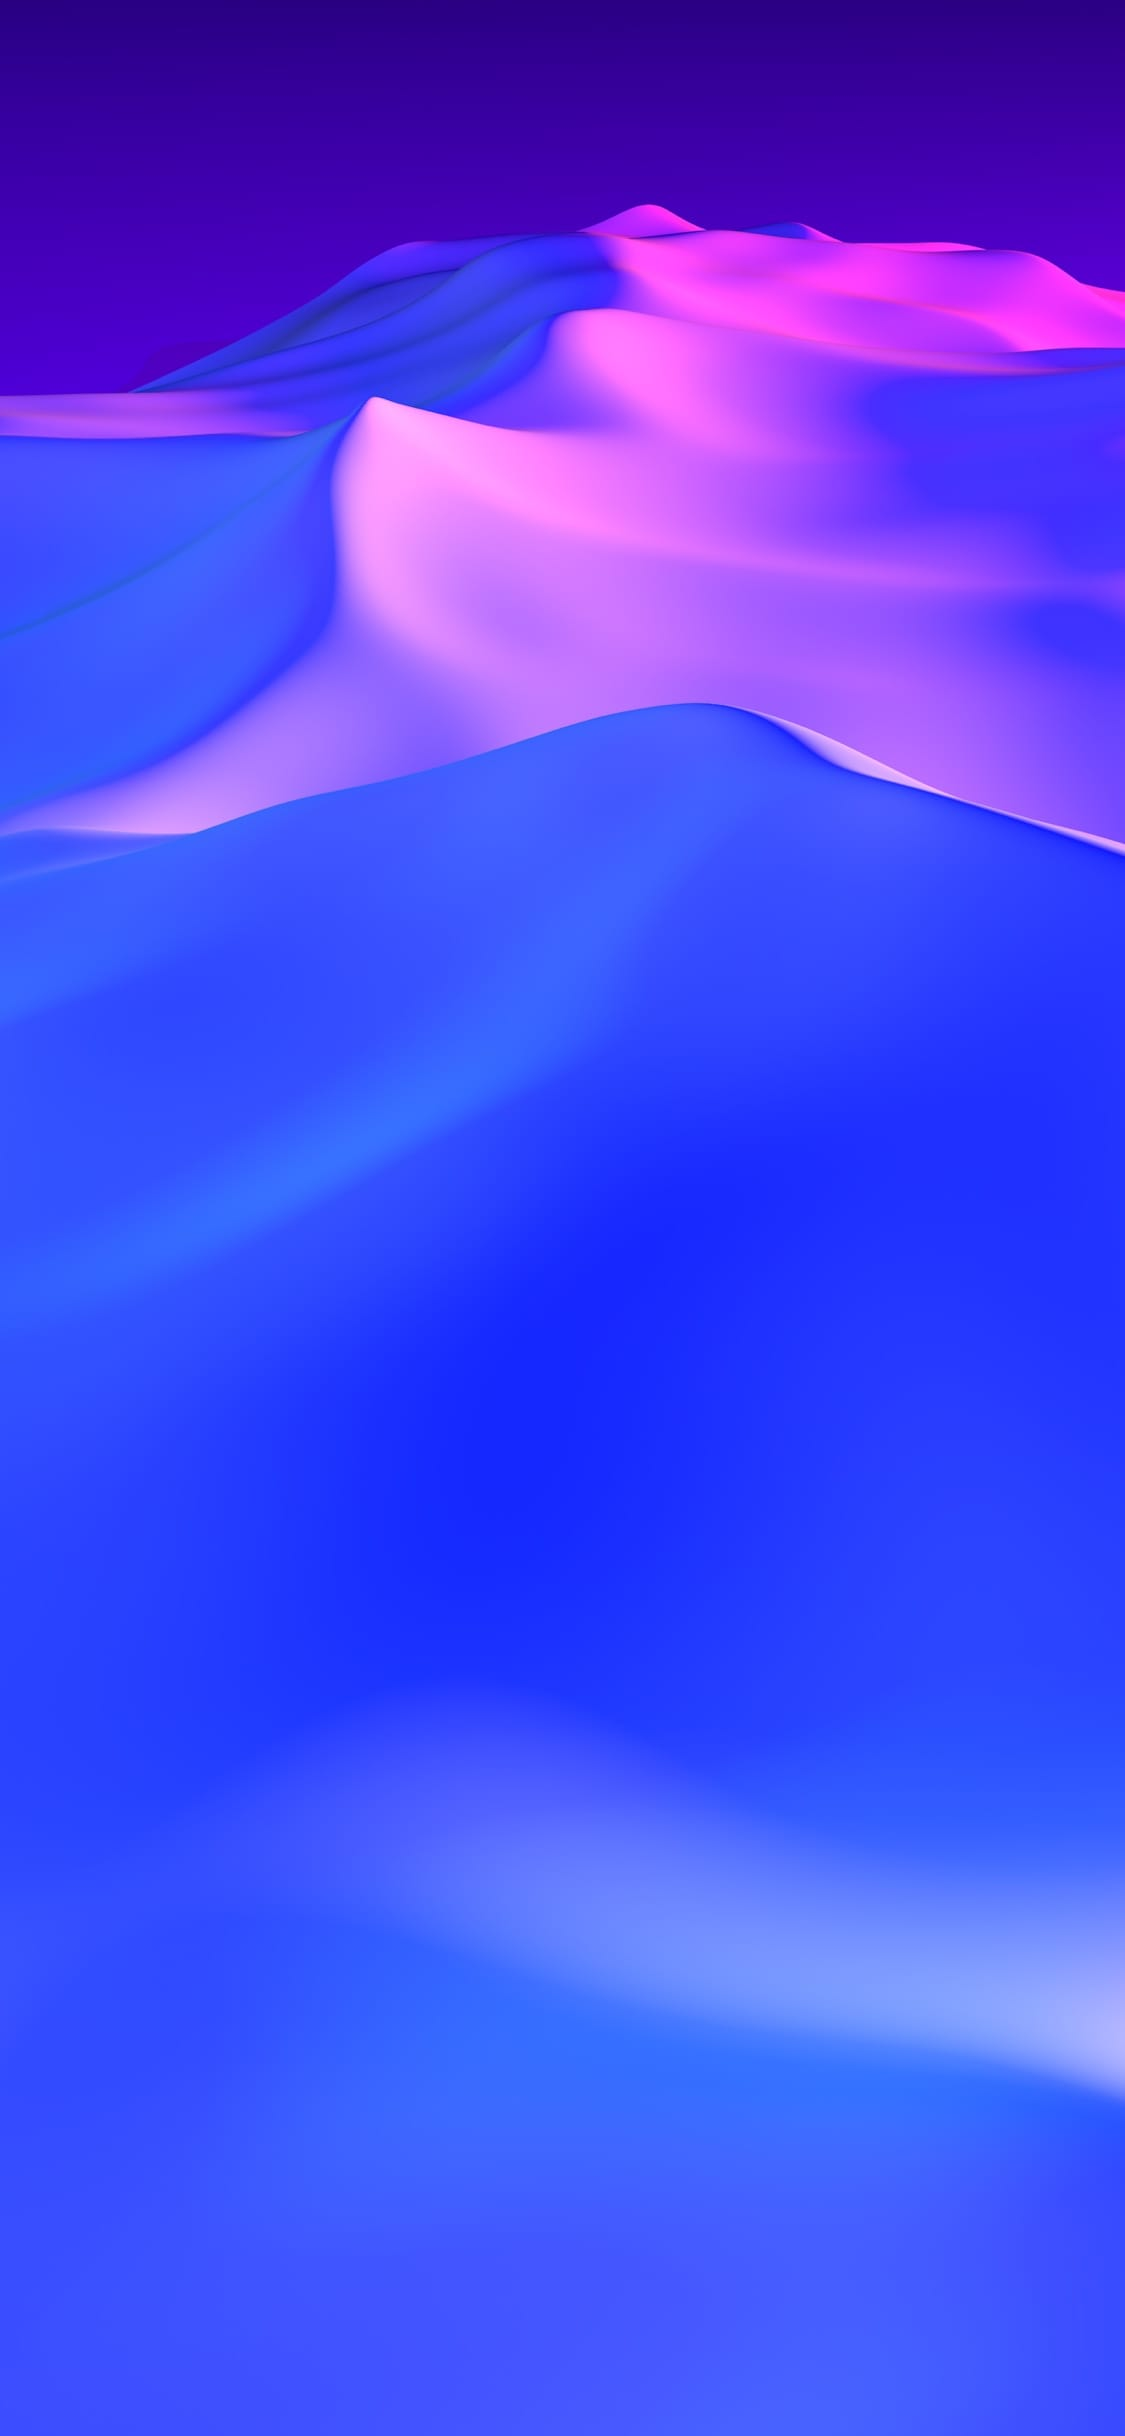 iPhone X Wallpapers download